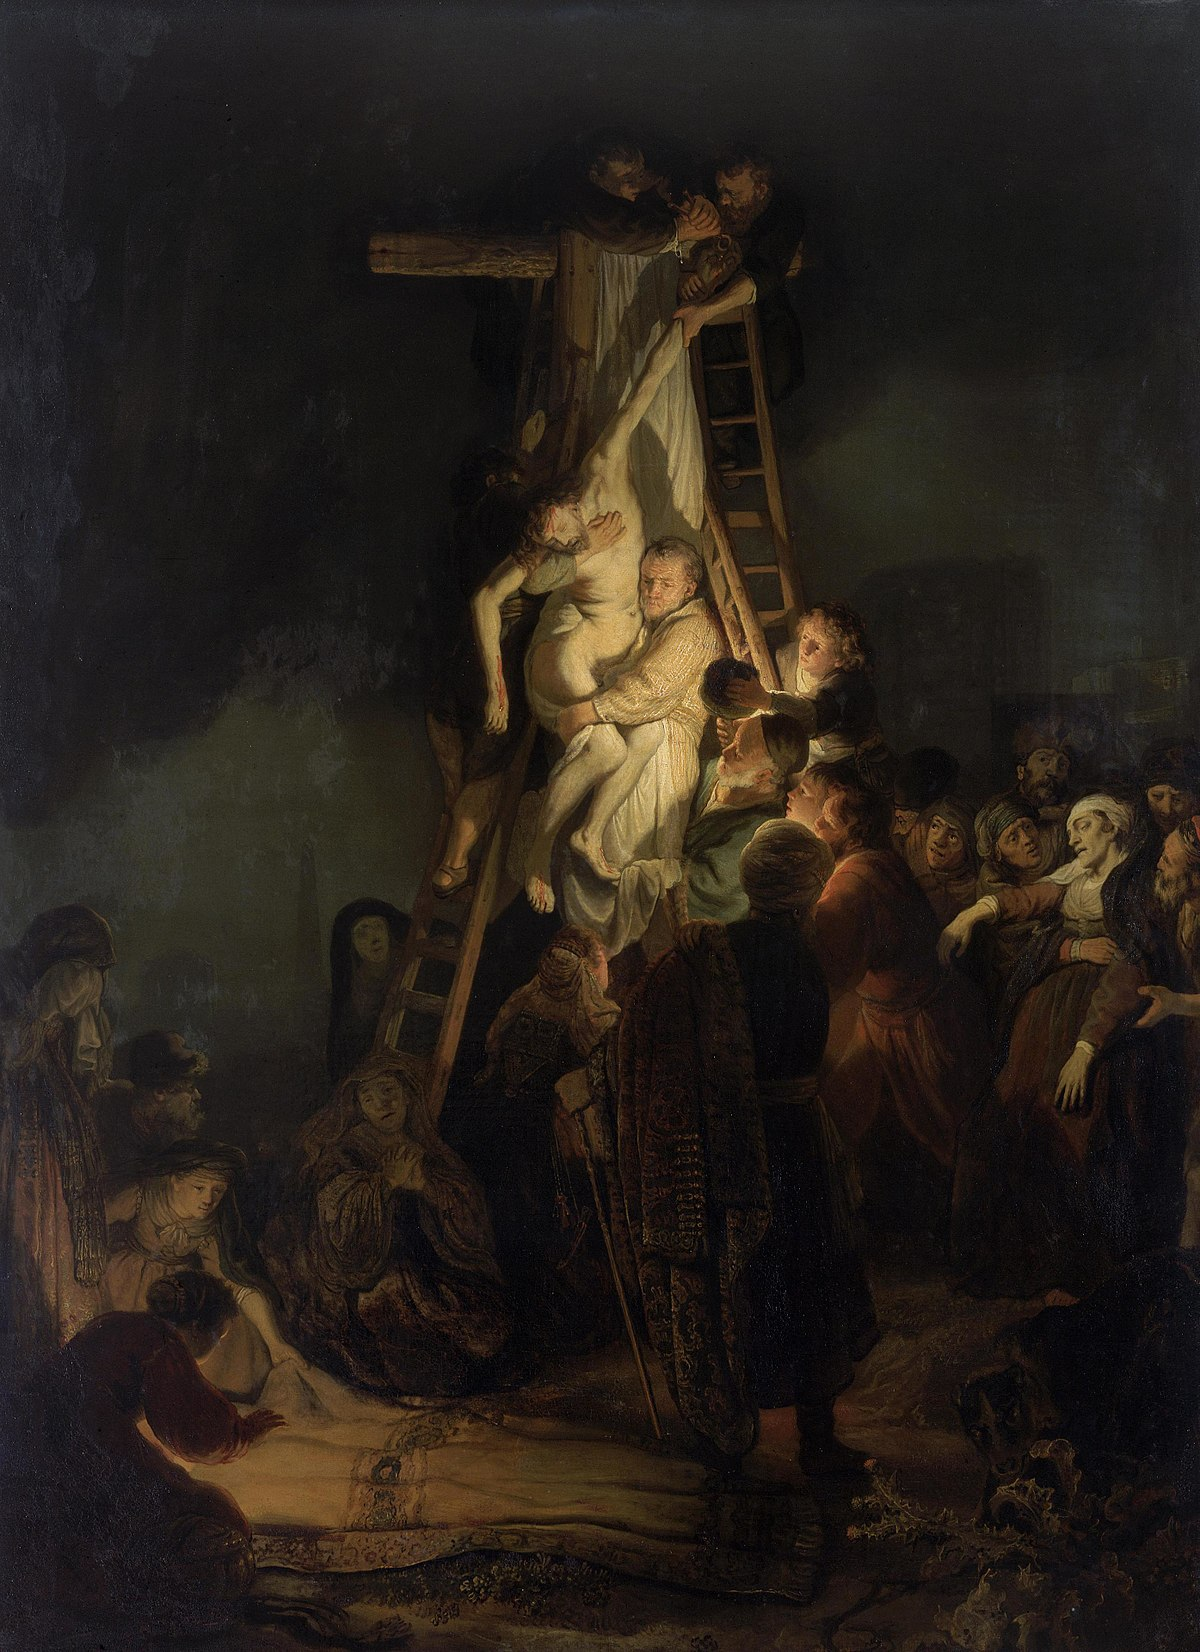 Rubens and Rembrandt